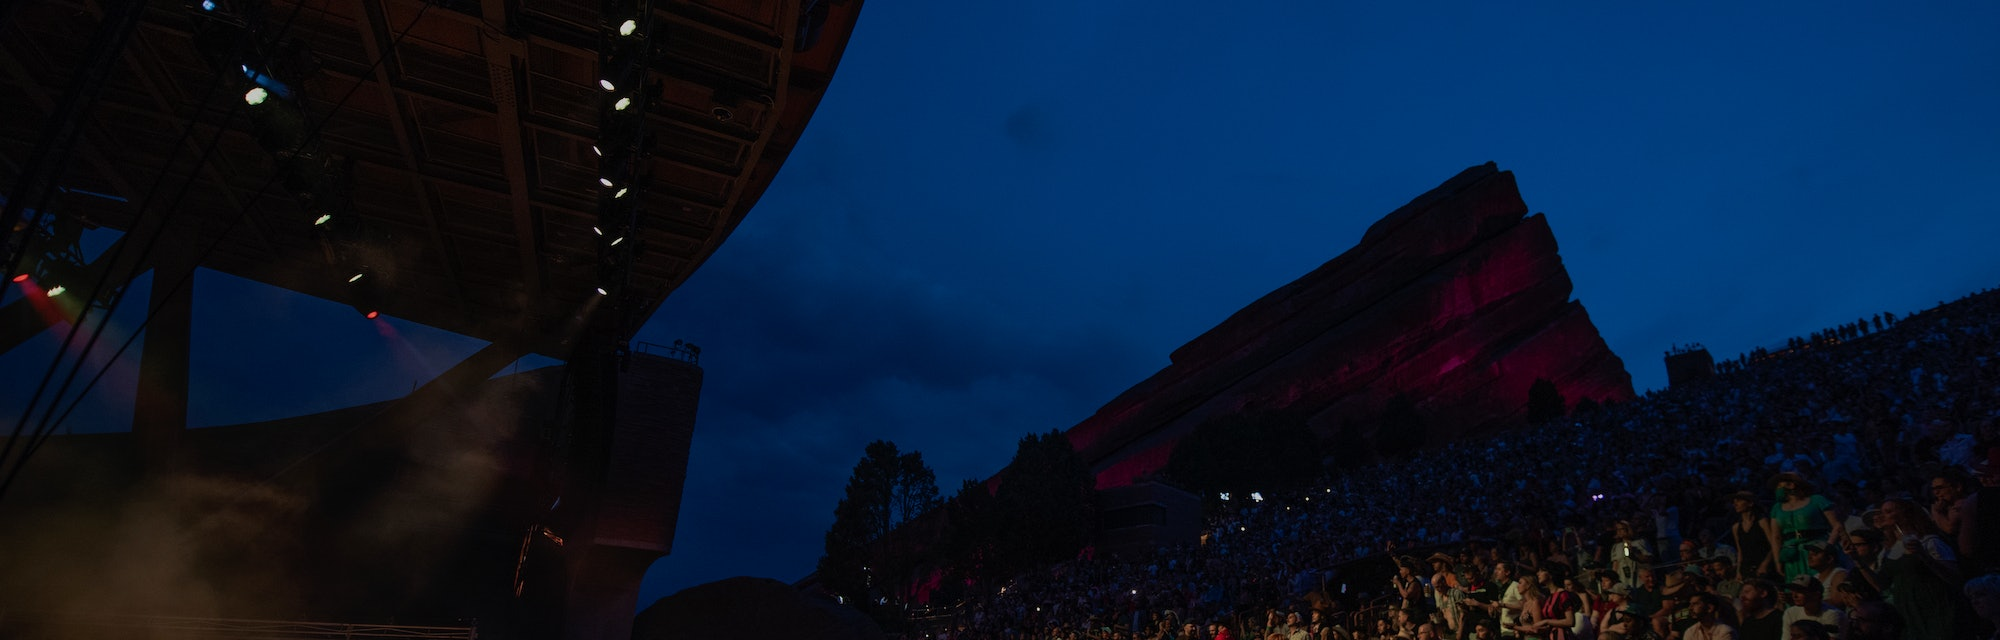 MORRISON, COLORADO - JULY 22: Musician Yola opens for Orville Peck Summertime Tour at Red Rocks Amph...